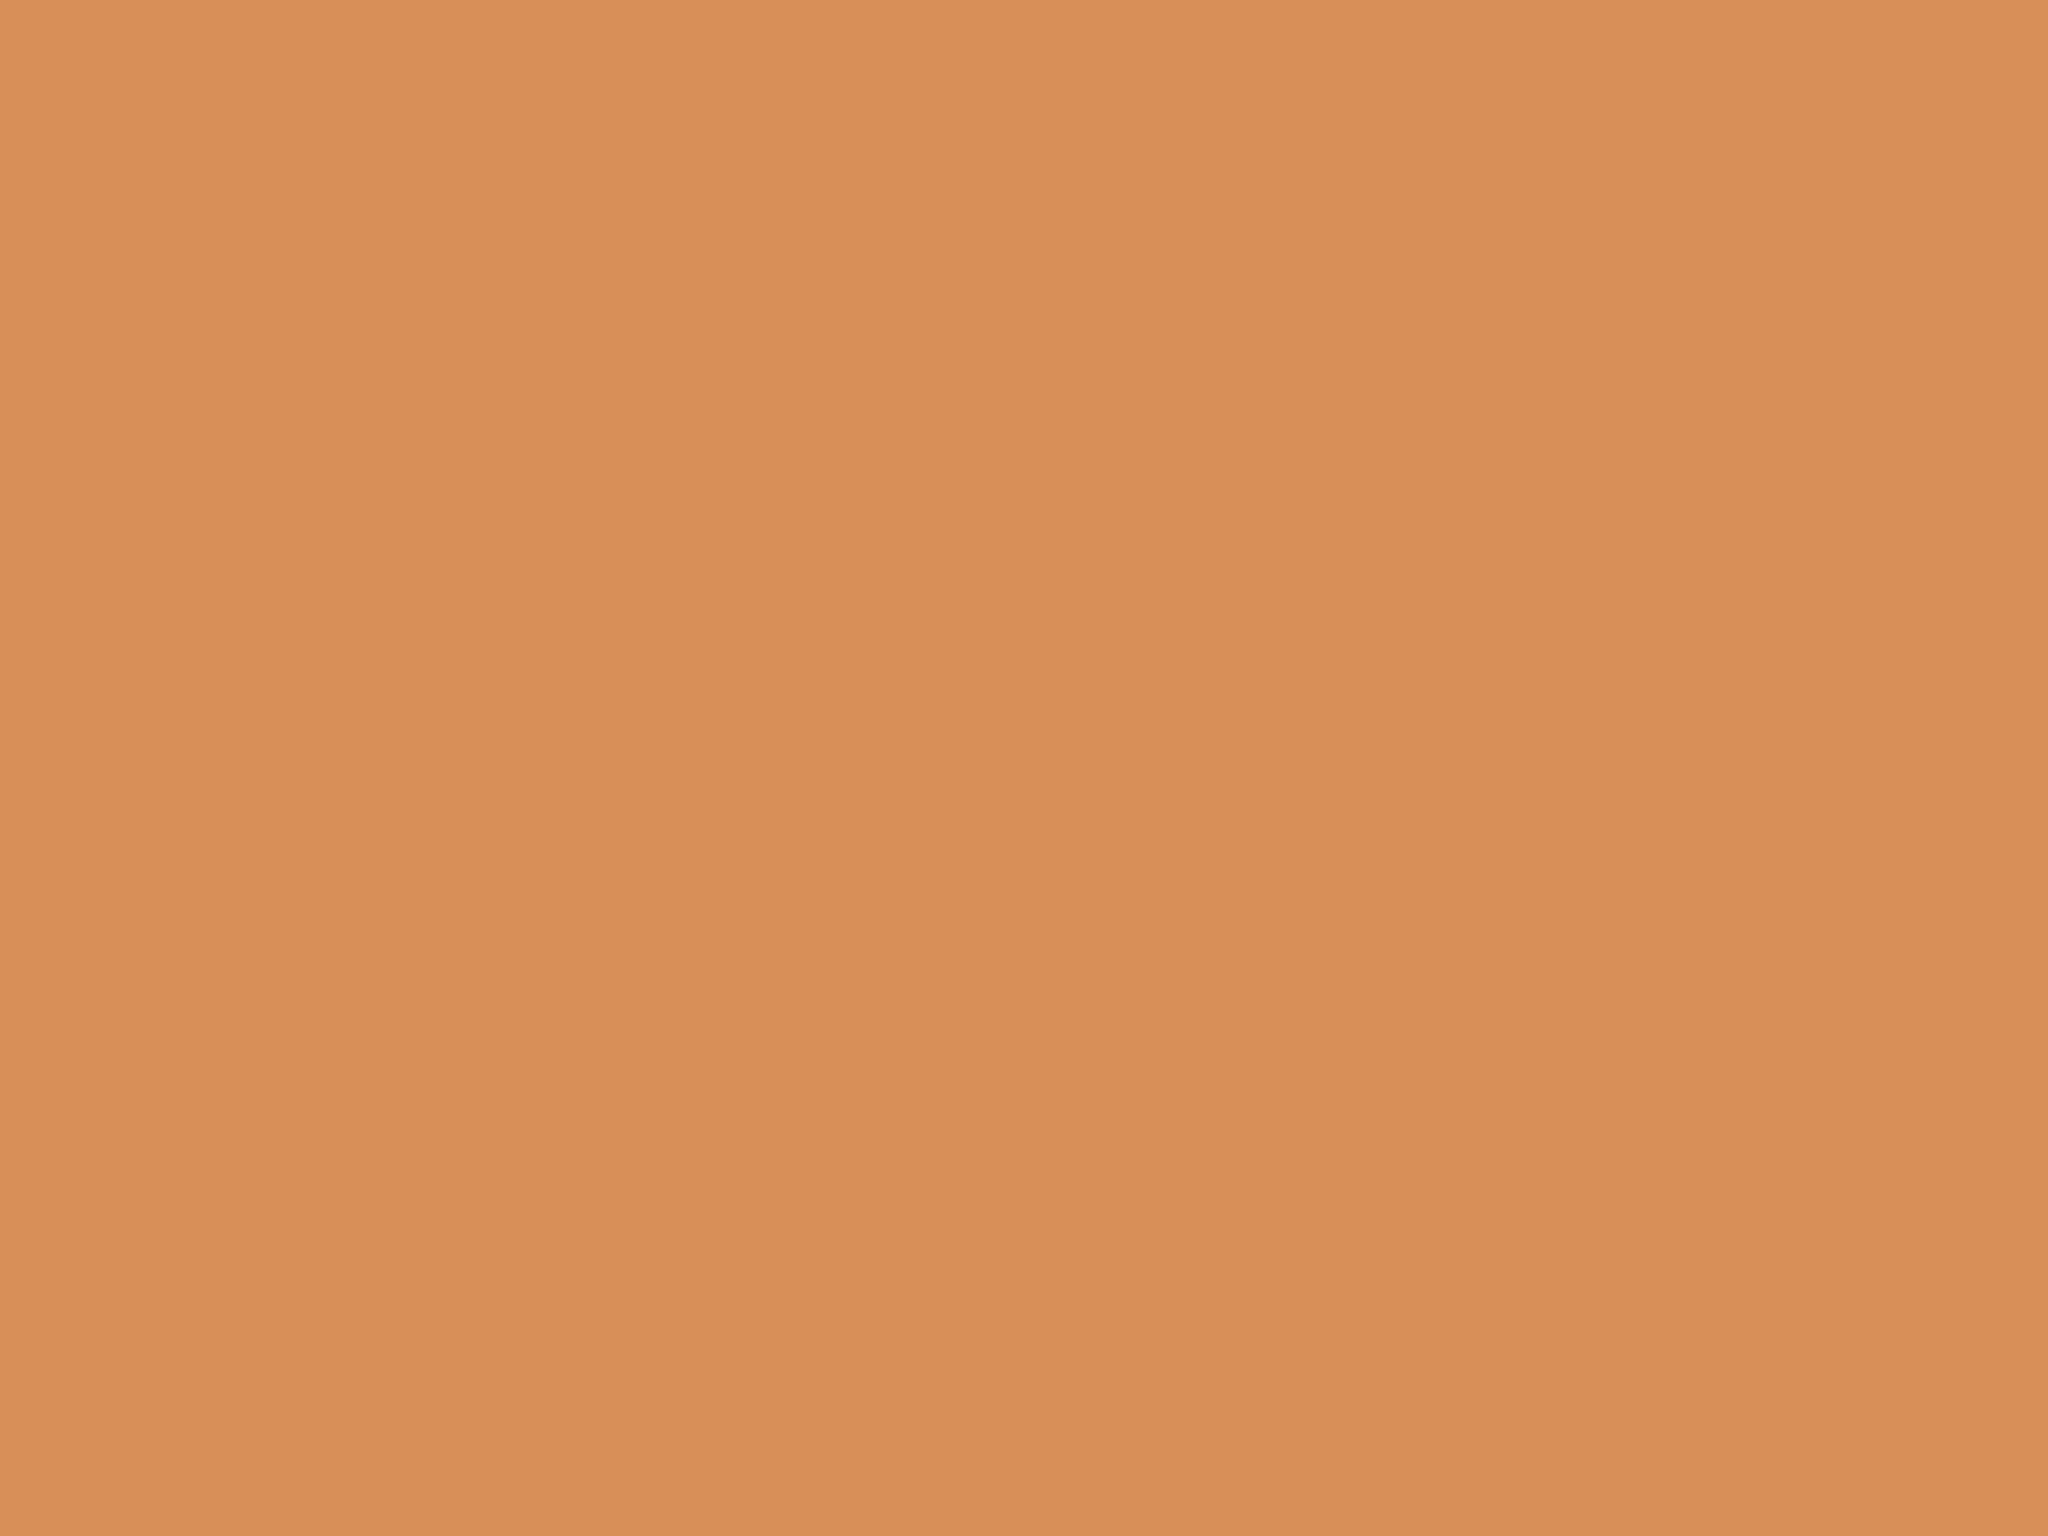 2048x1536 Persian Orange Solid Color Background